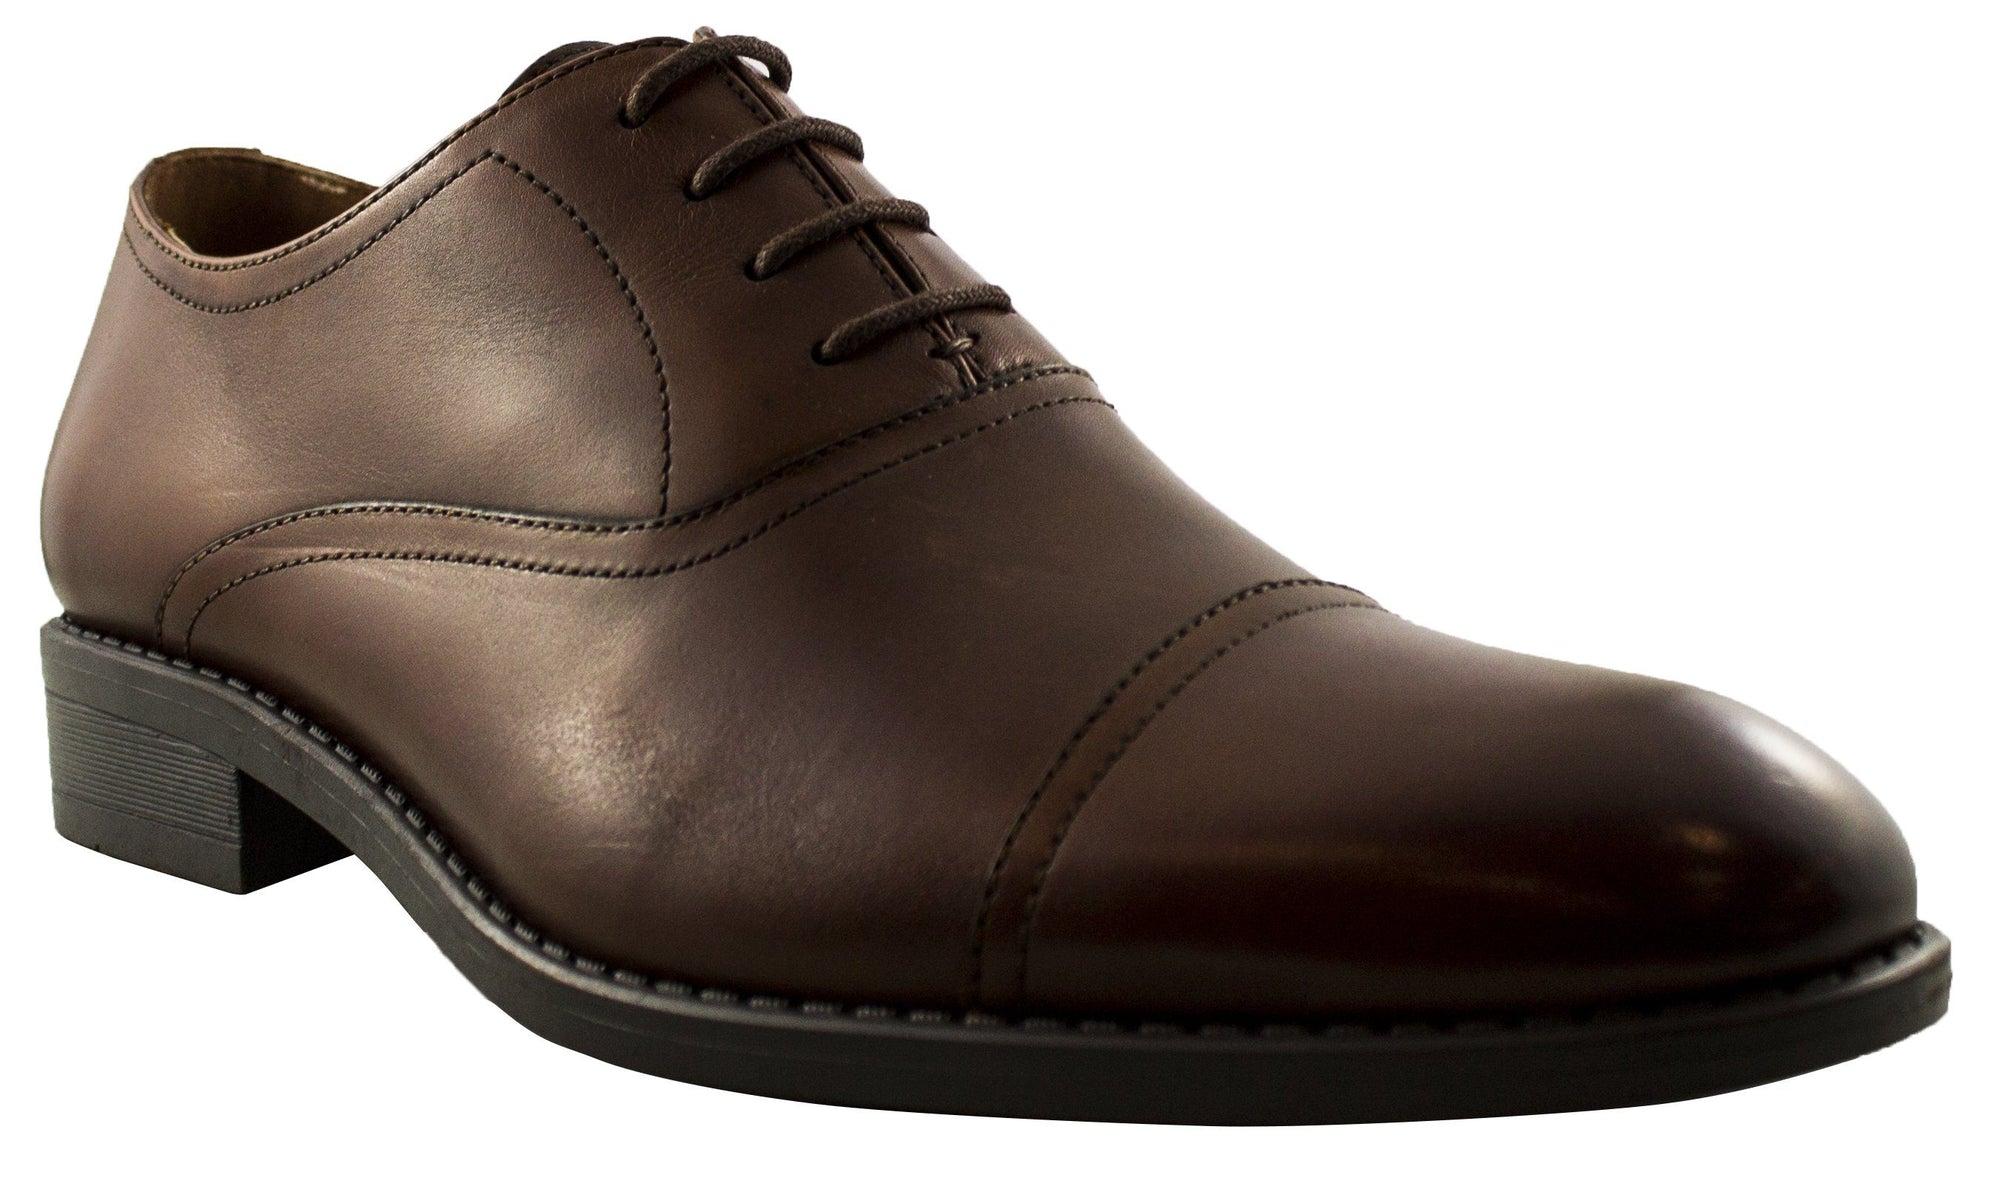 Geoffrey Beene - Hudson Leather Toe Cap Dress Shoe - Brown Footwear Geoffrey Beene